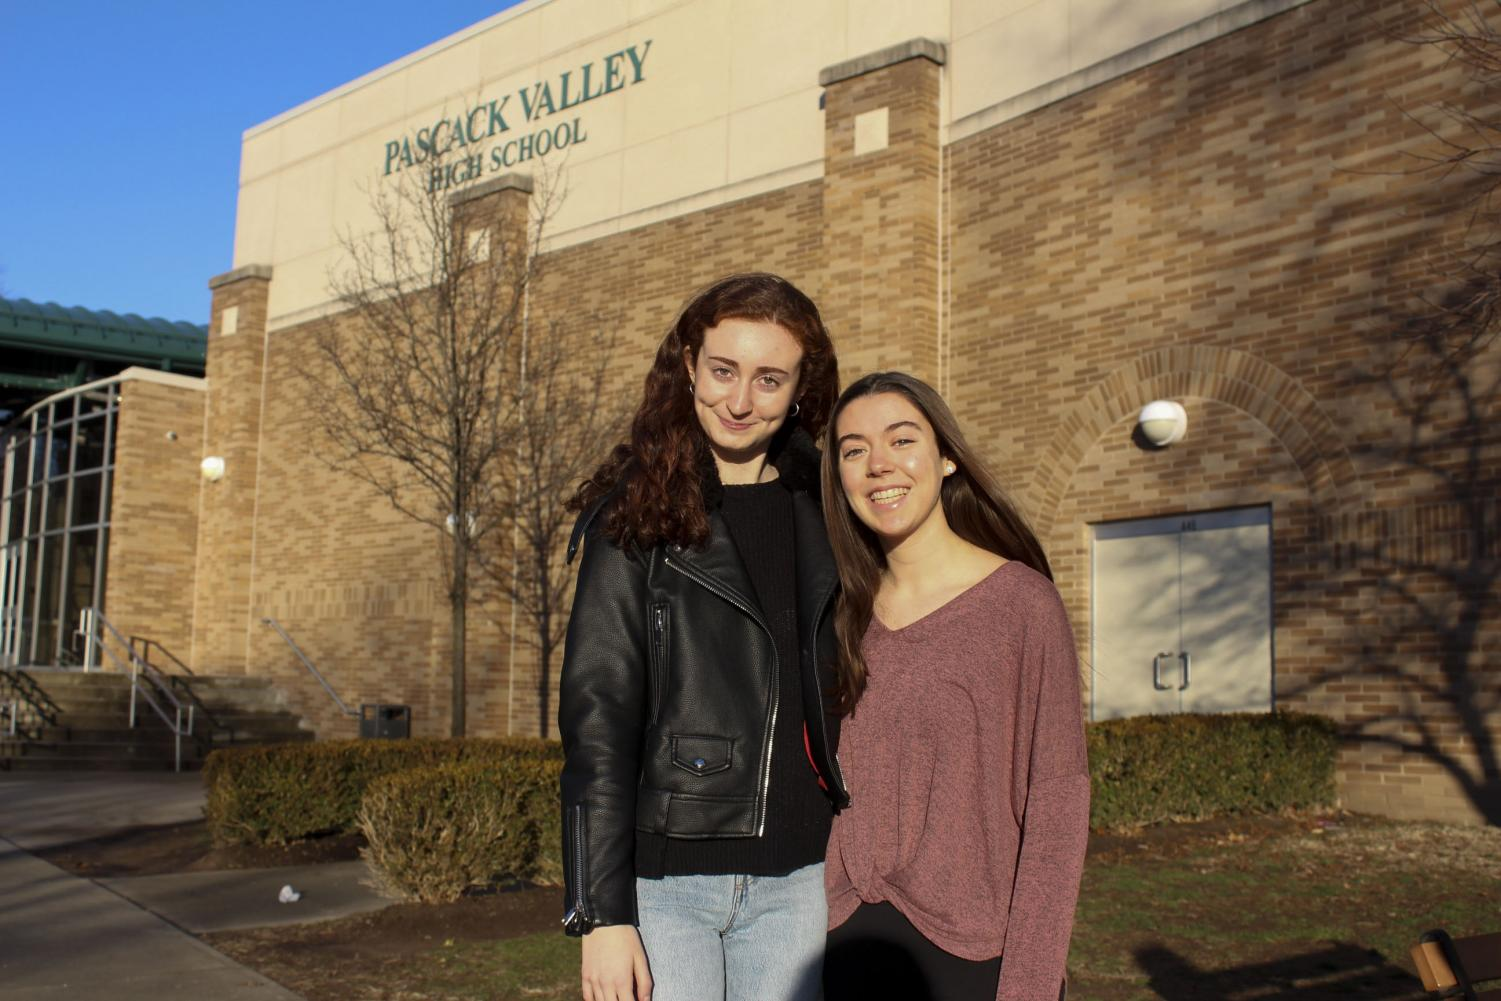 Pascack Valley juniors Rachel Cohen and Katie Mullaney are going to be editors-in-chief of The Smoke Signal for the 2019-2020 school year. Editor-in-chief Madison Gallo and assistant editor-in-chief Kayla Barry will be graduating at the end of this year.